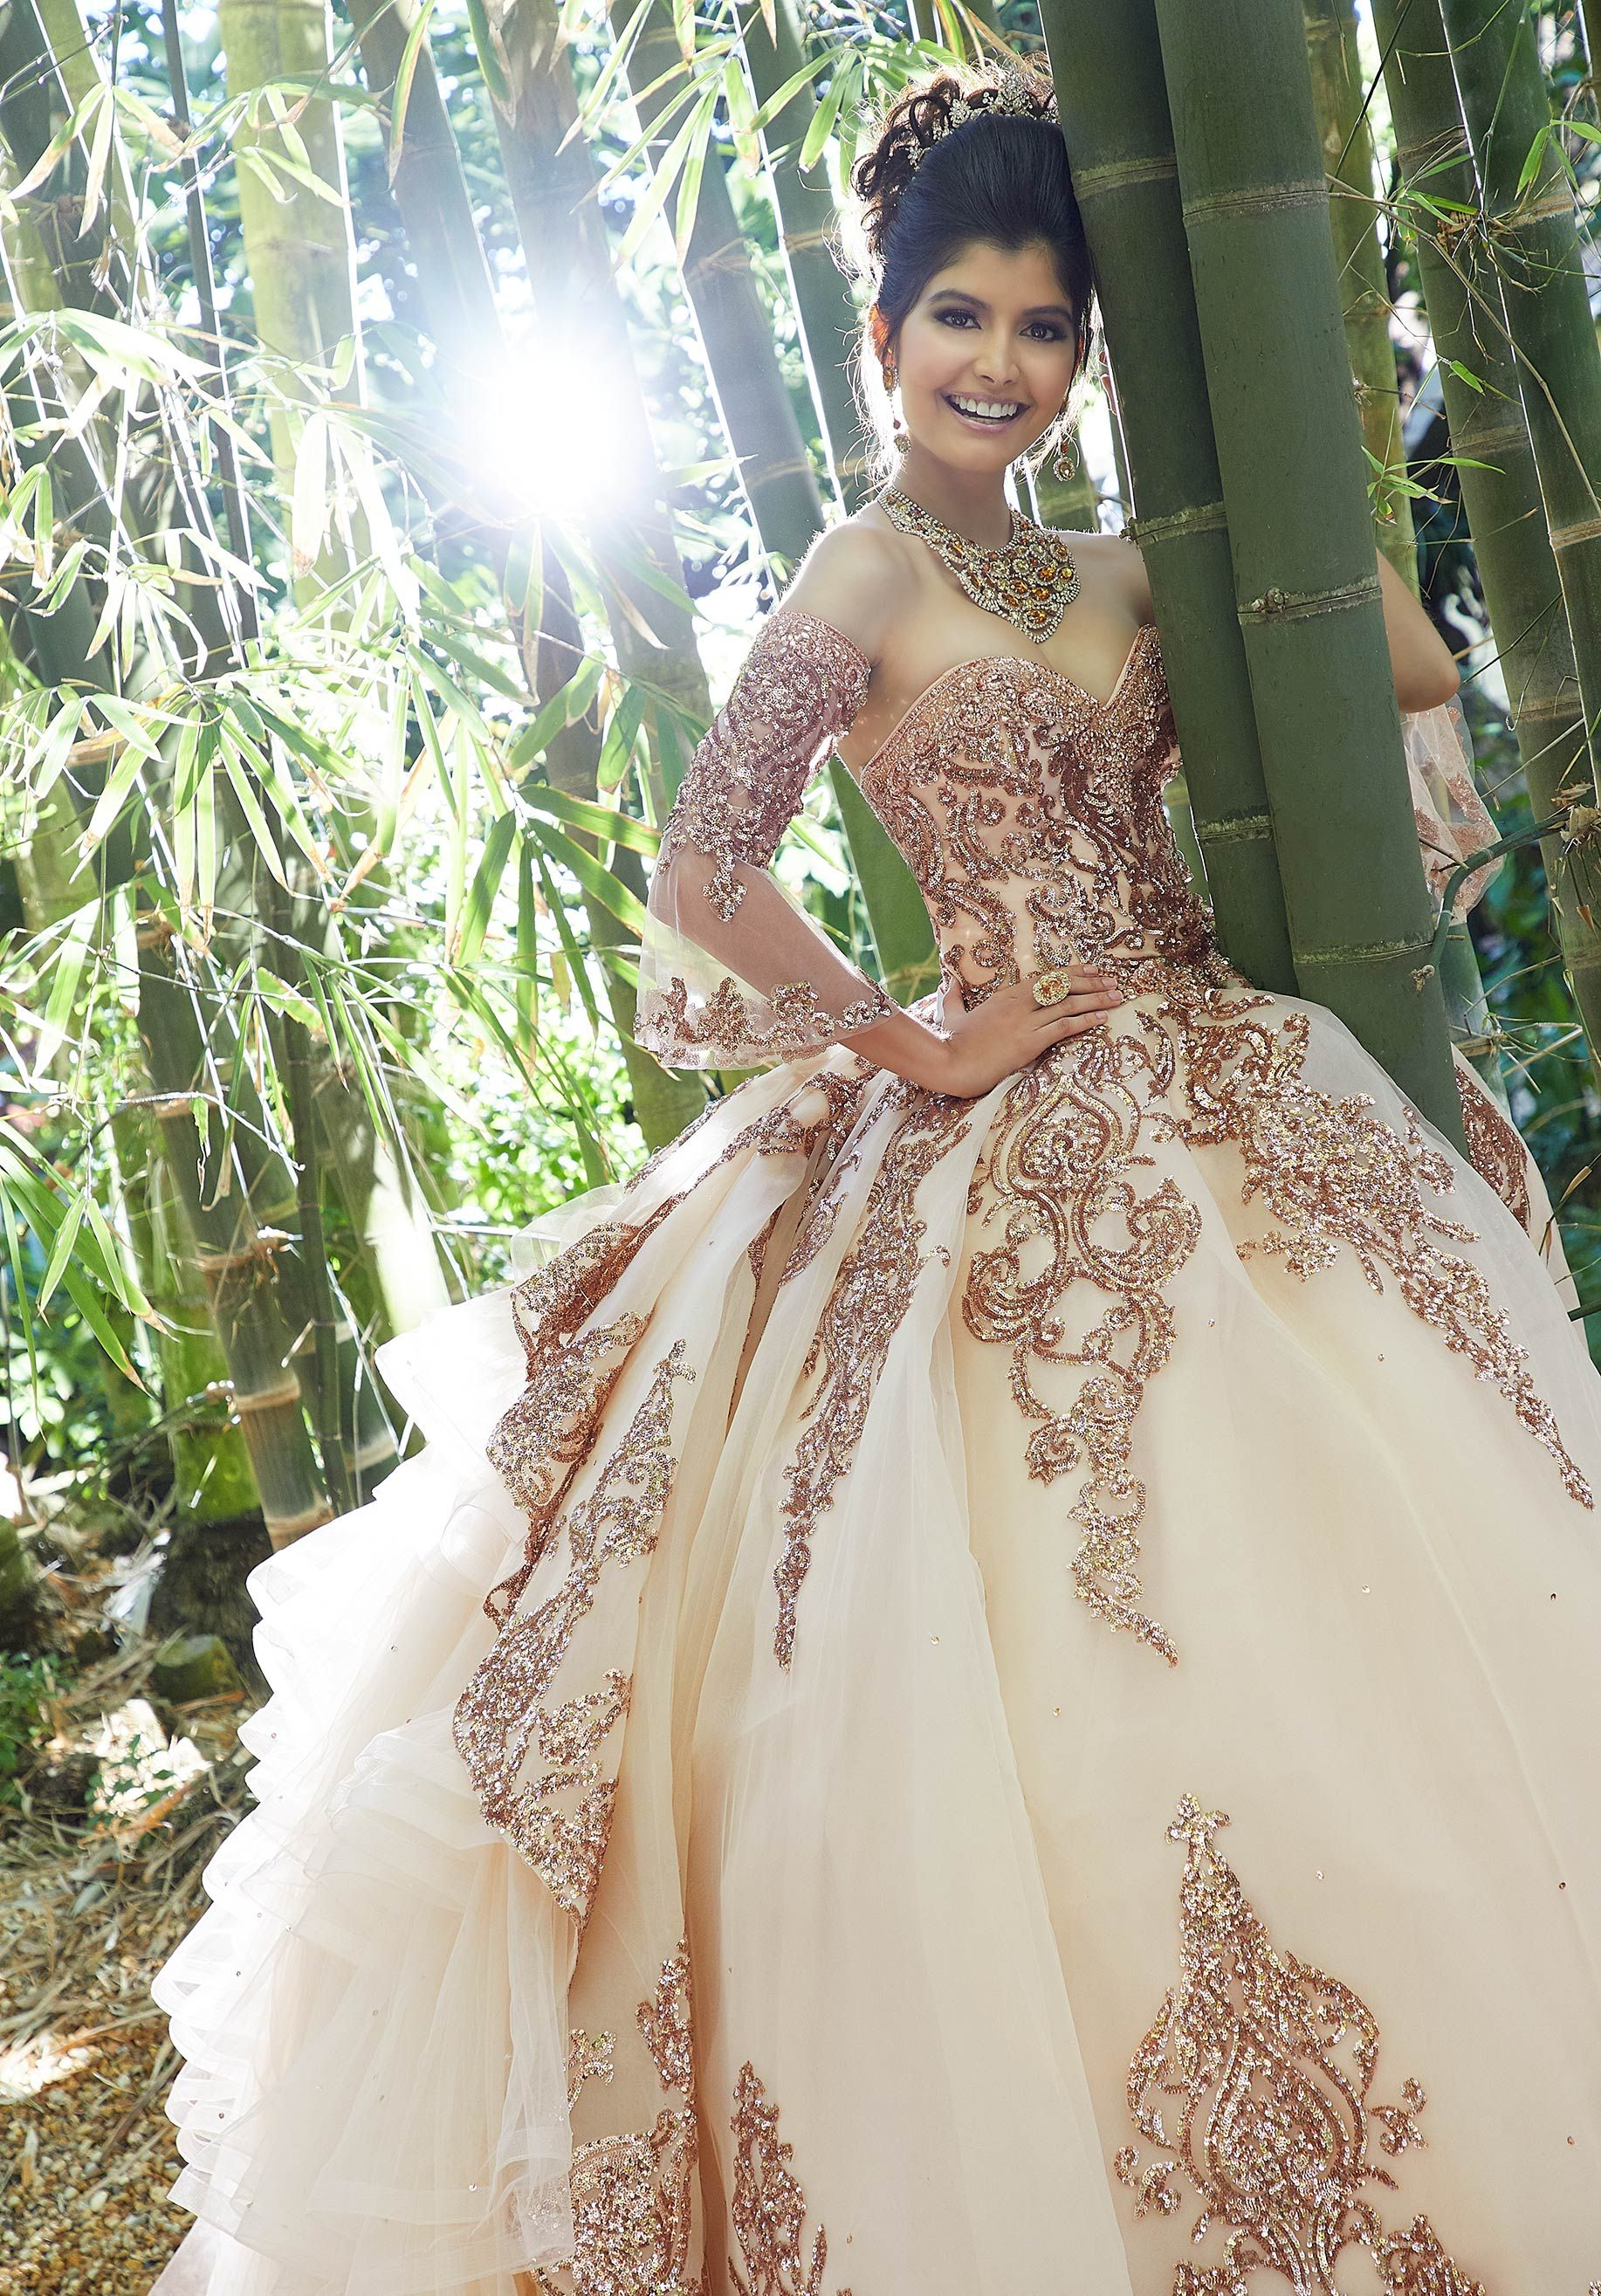 Rose Gold Quinceanera Dress By Morilee Morilee Style 89255 Quinceanera Dresses Gold Rose Gold Quinceanera Dresses Quinceanera Dresses